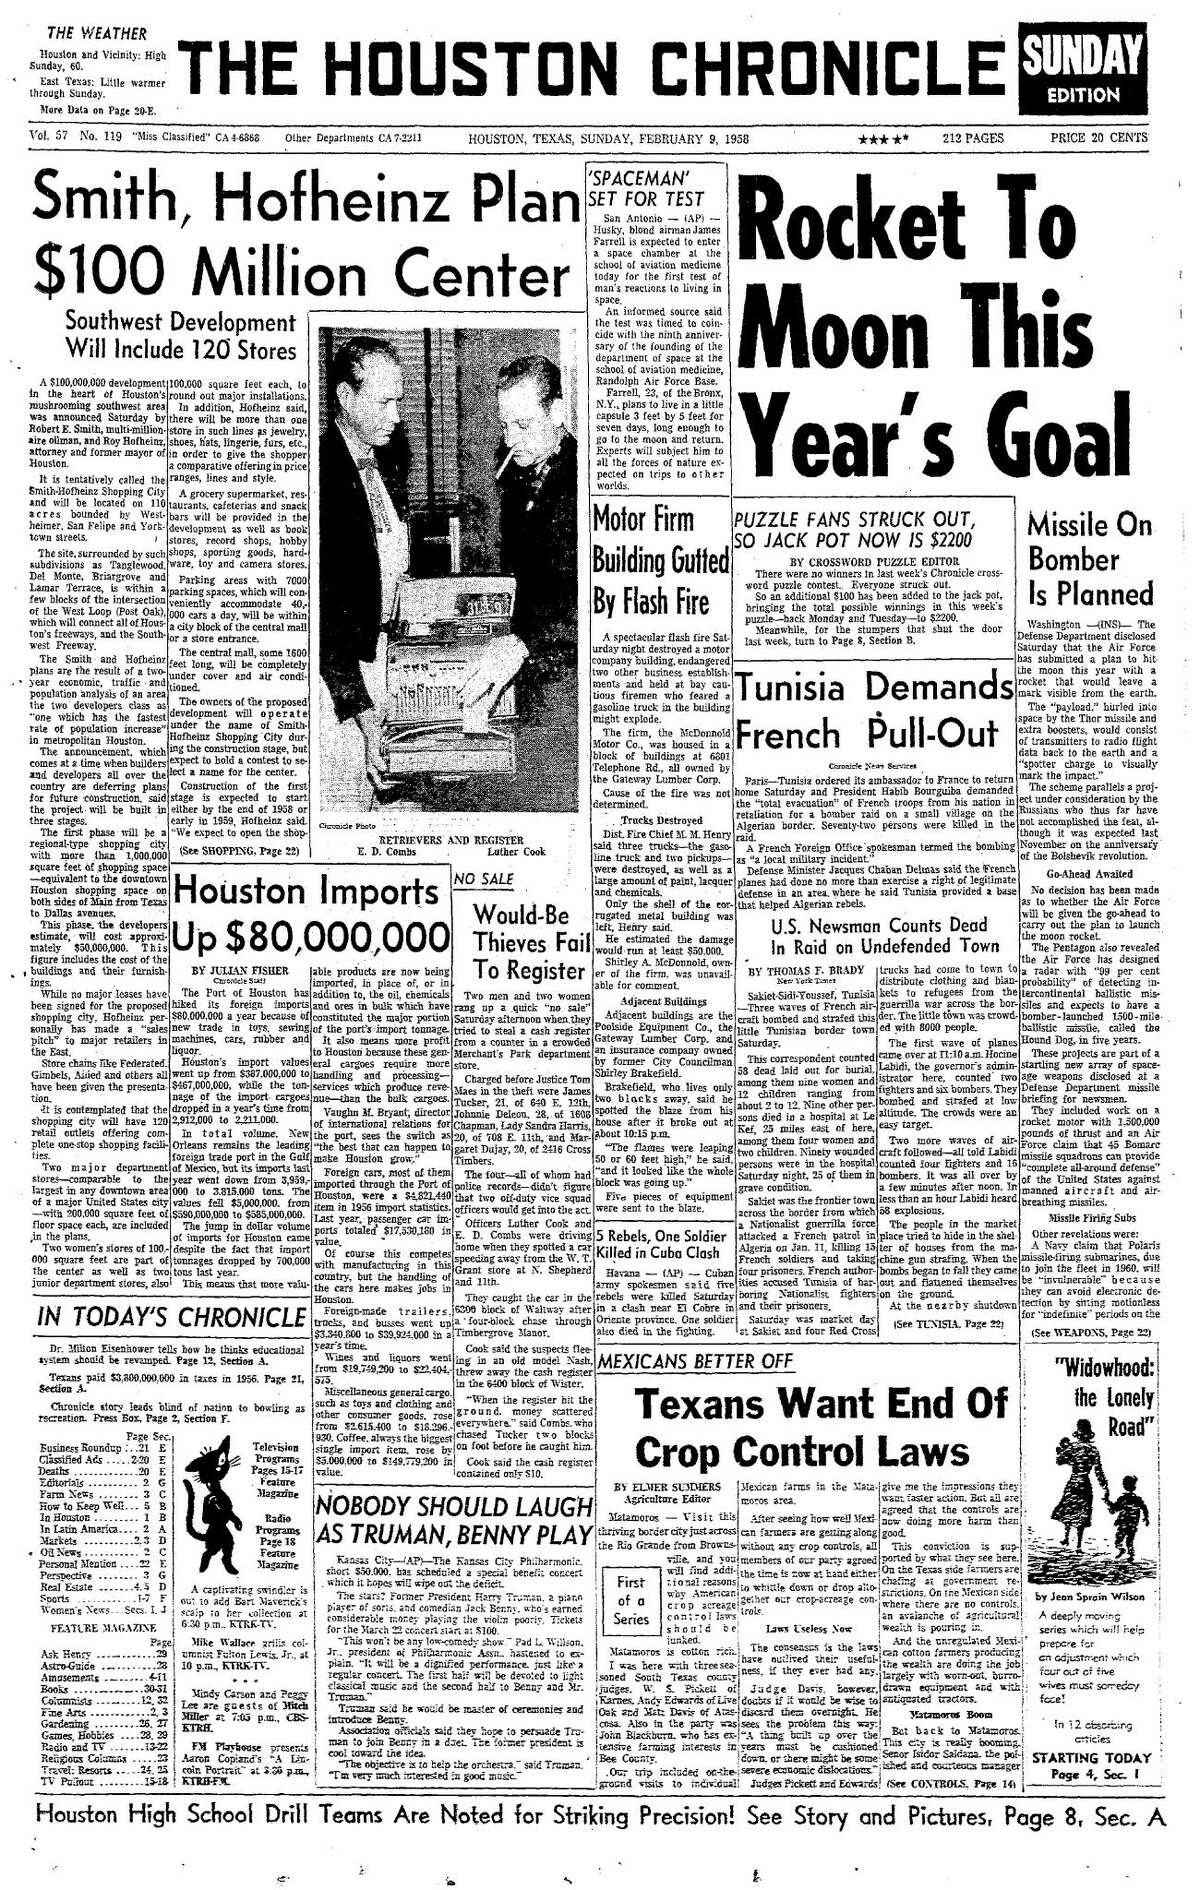 Houston Chronicle front page for Feb. 9, 1958.